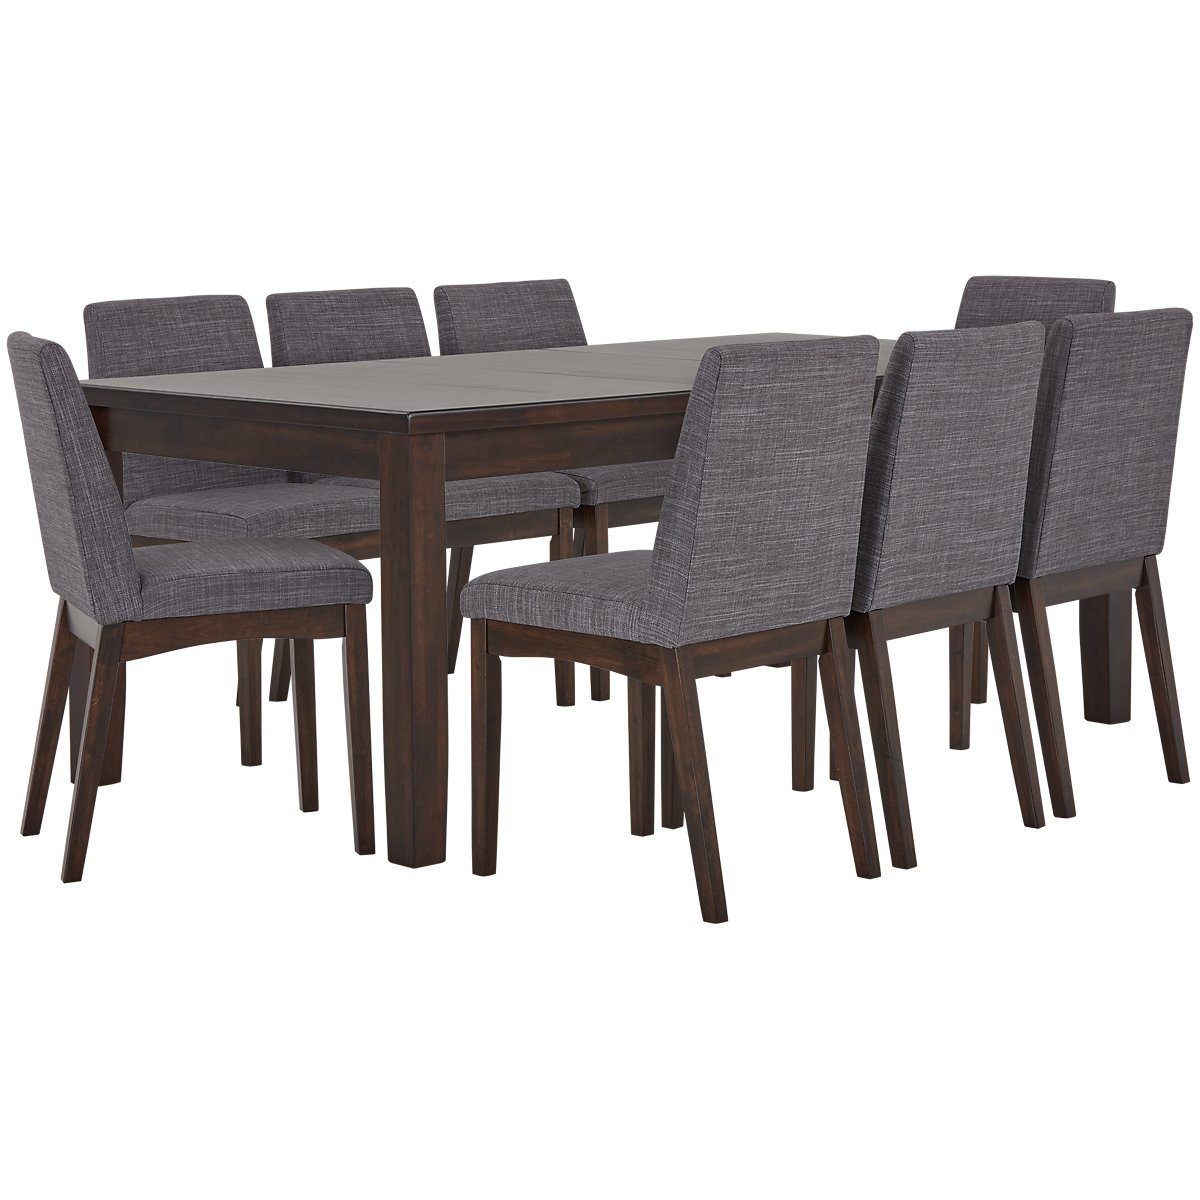 City Furniture Hayden Dark Gray Rectangular Table 4 Upholstered Chairs